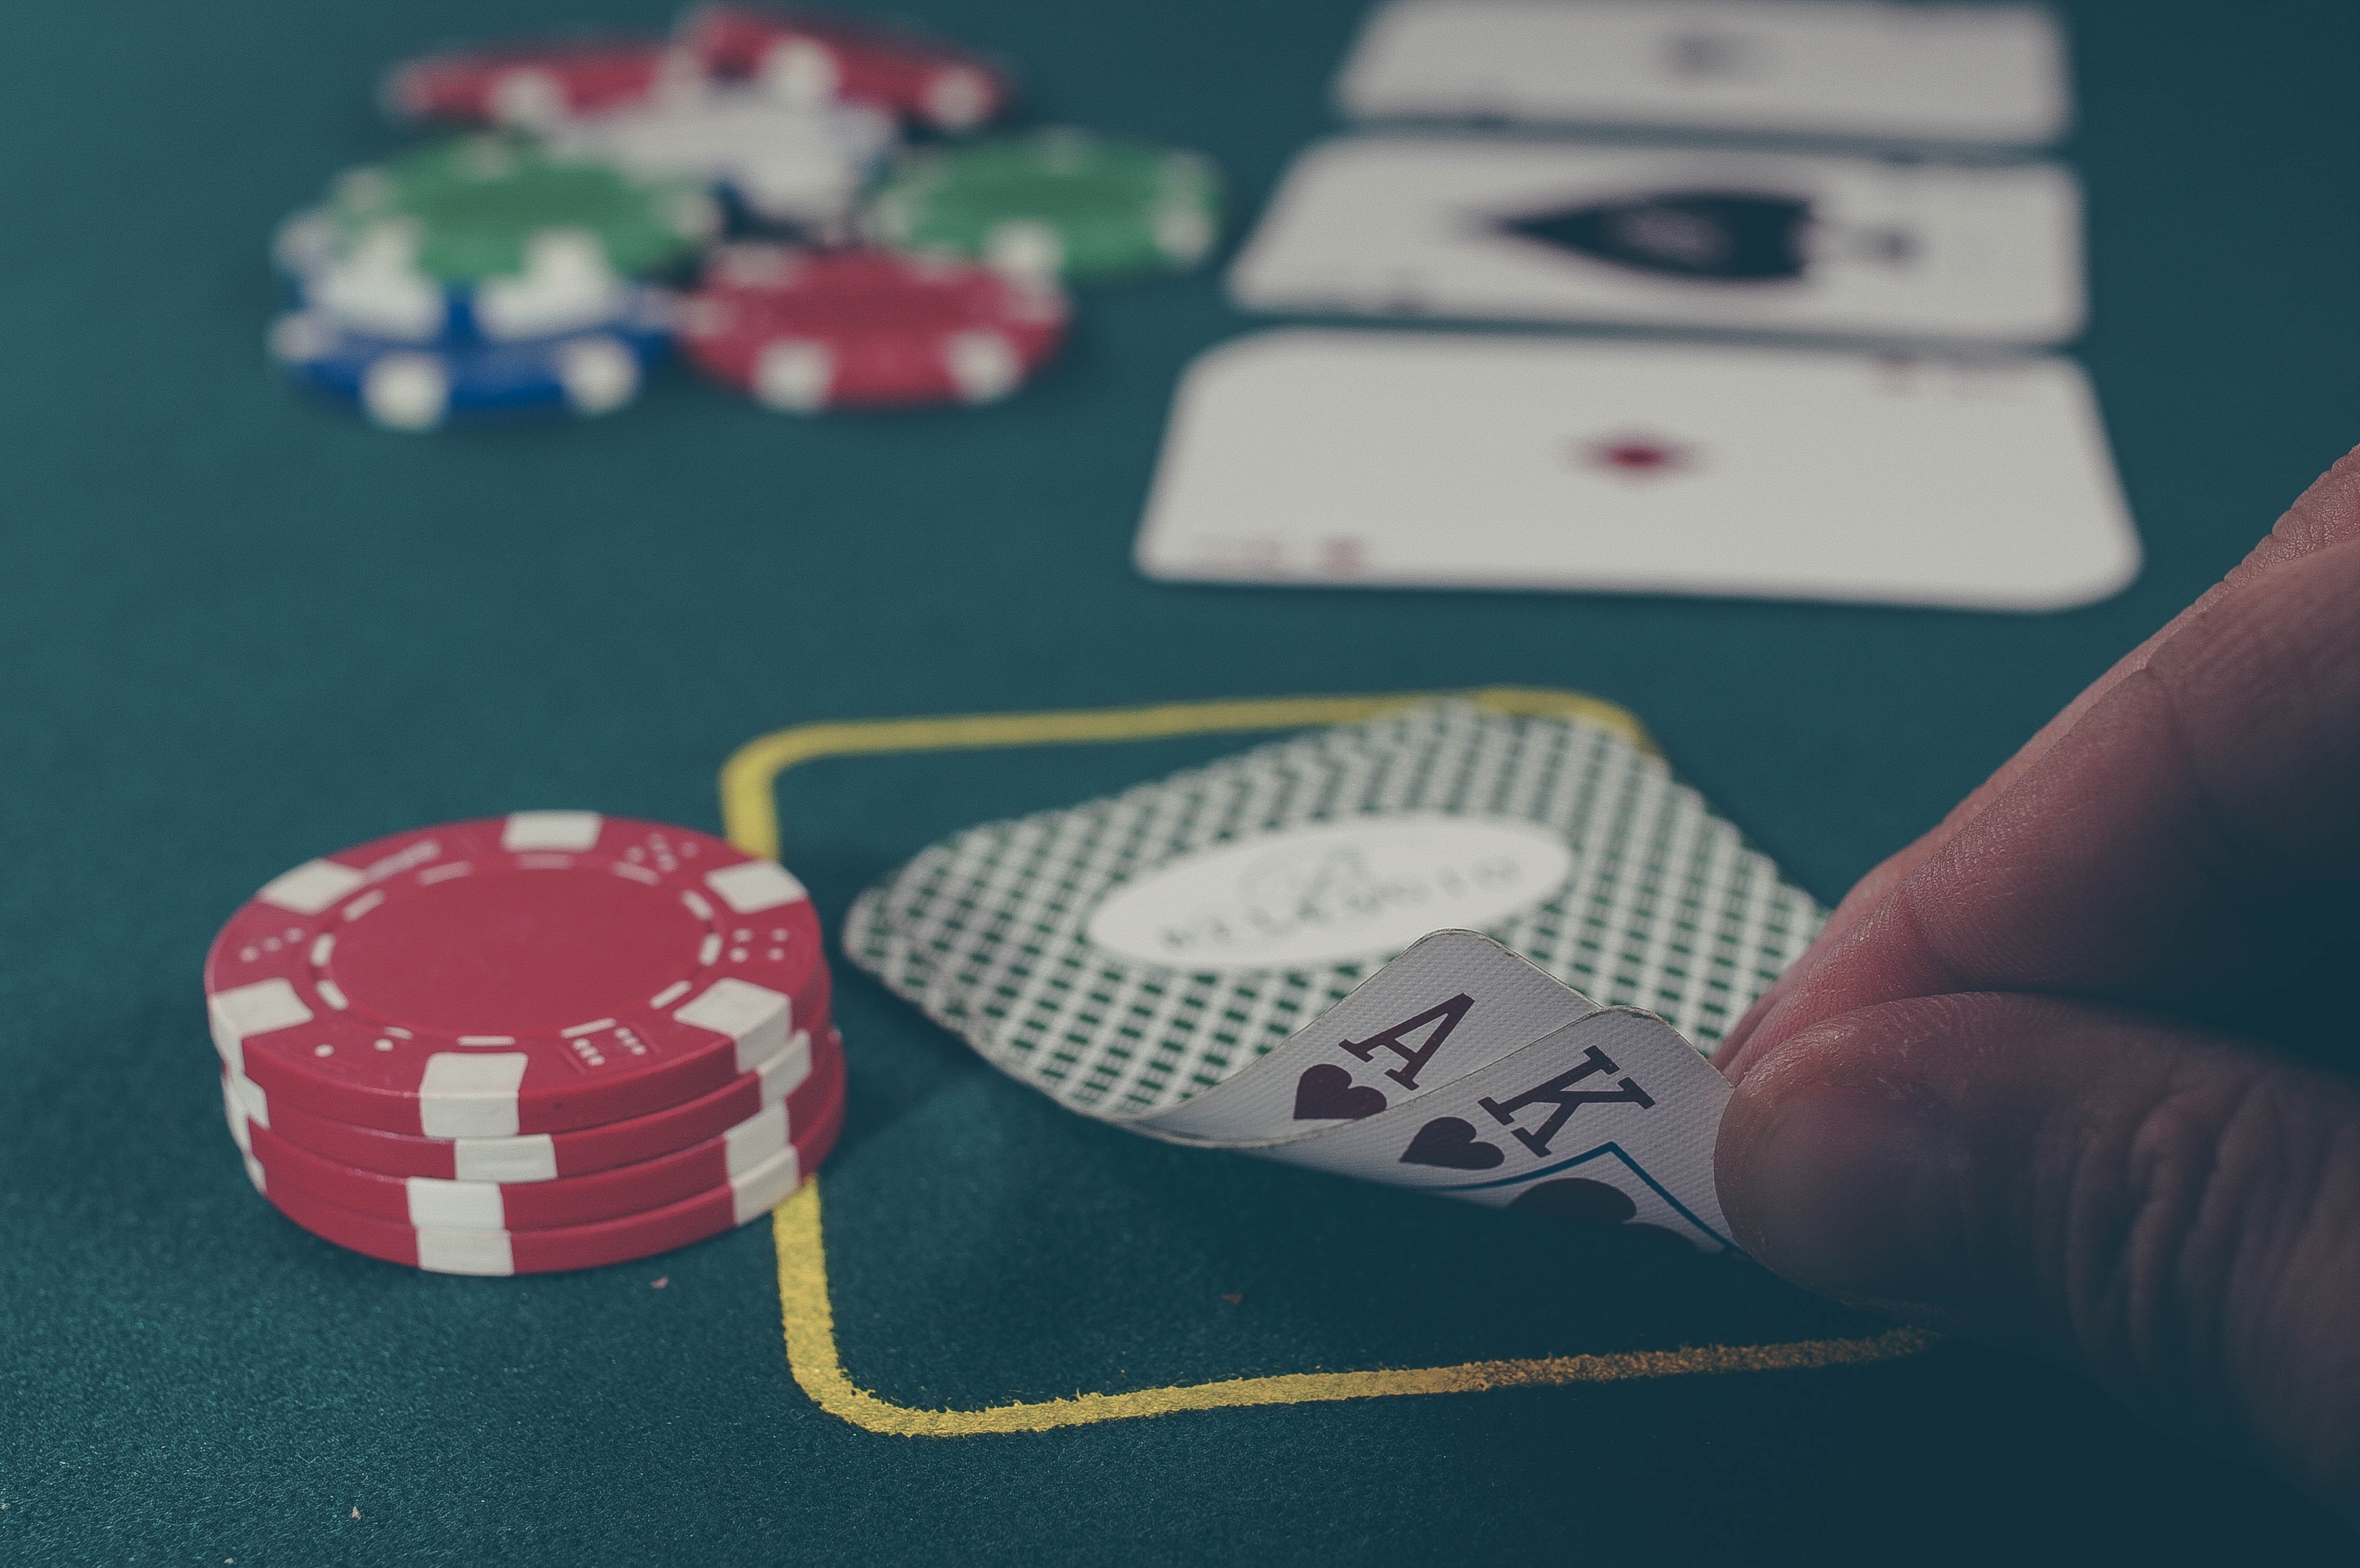 Gambling is legal in Puerto Rico, which is why Puerto Rico casinos can exist!